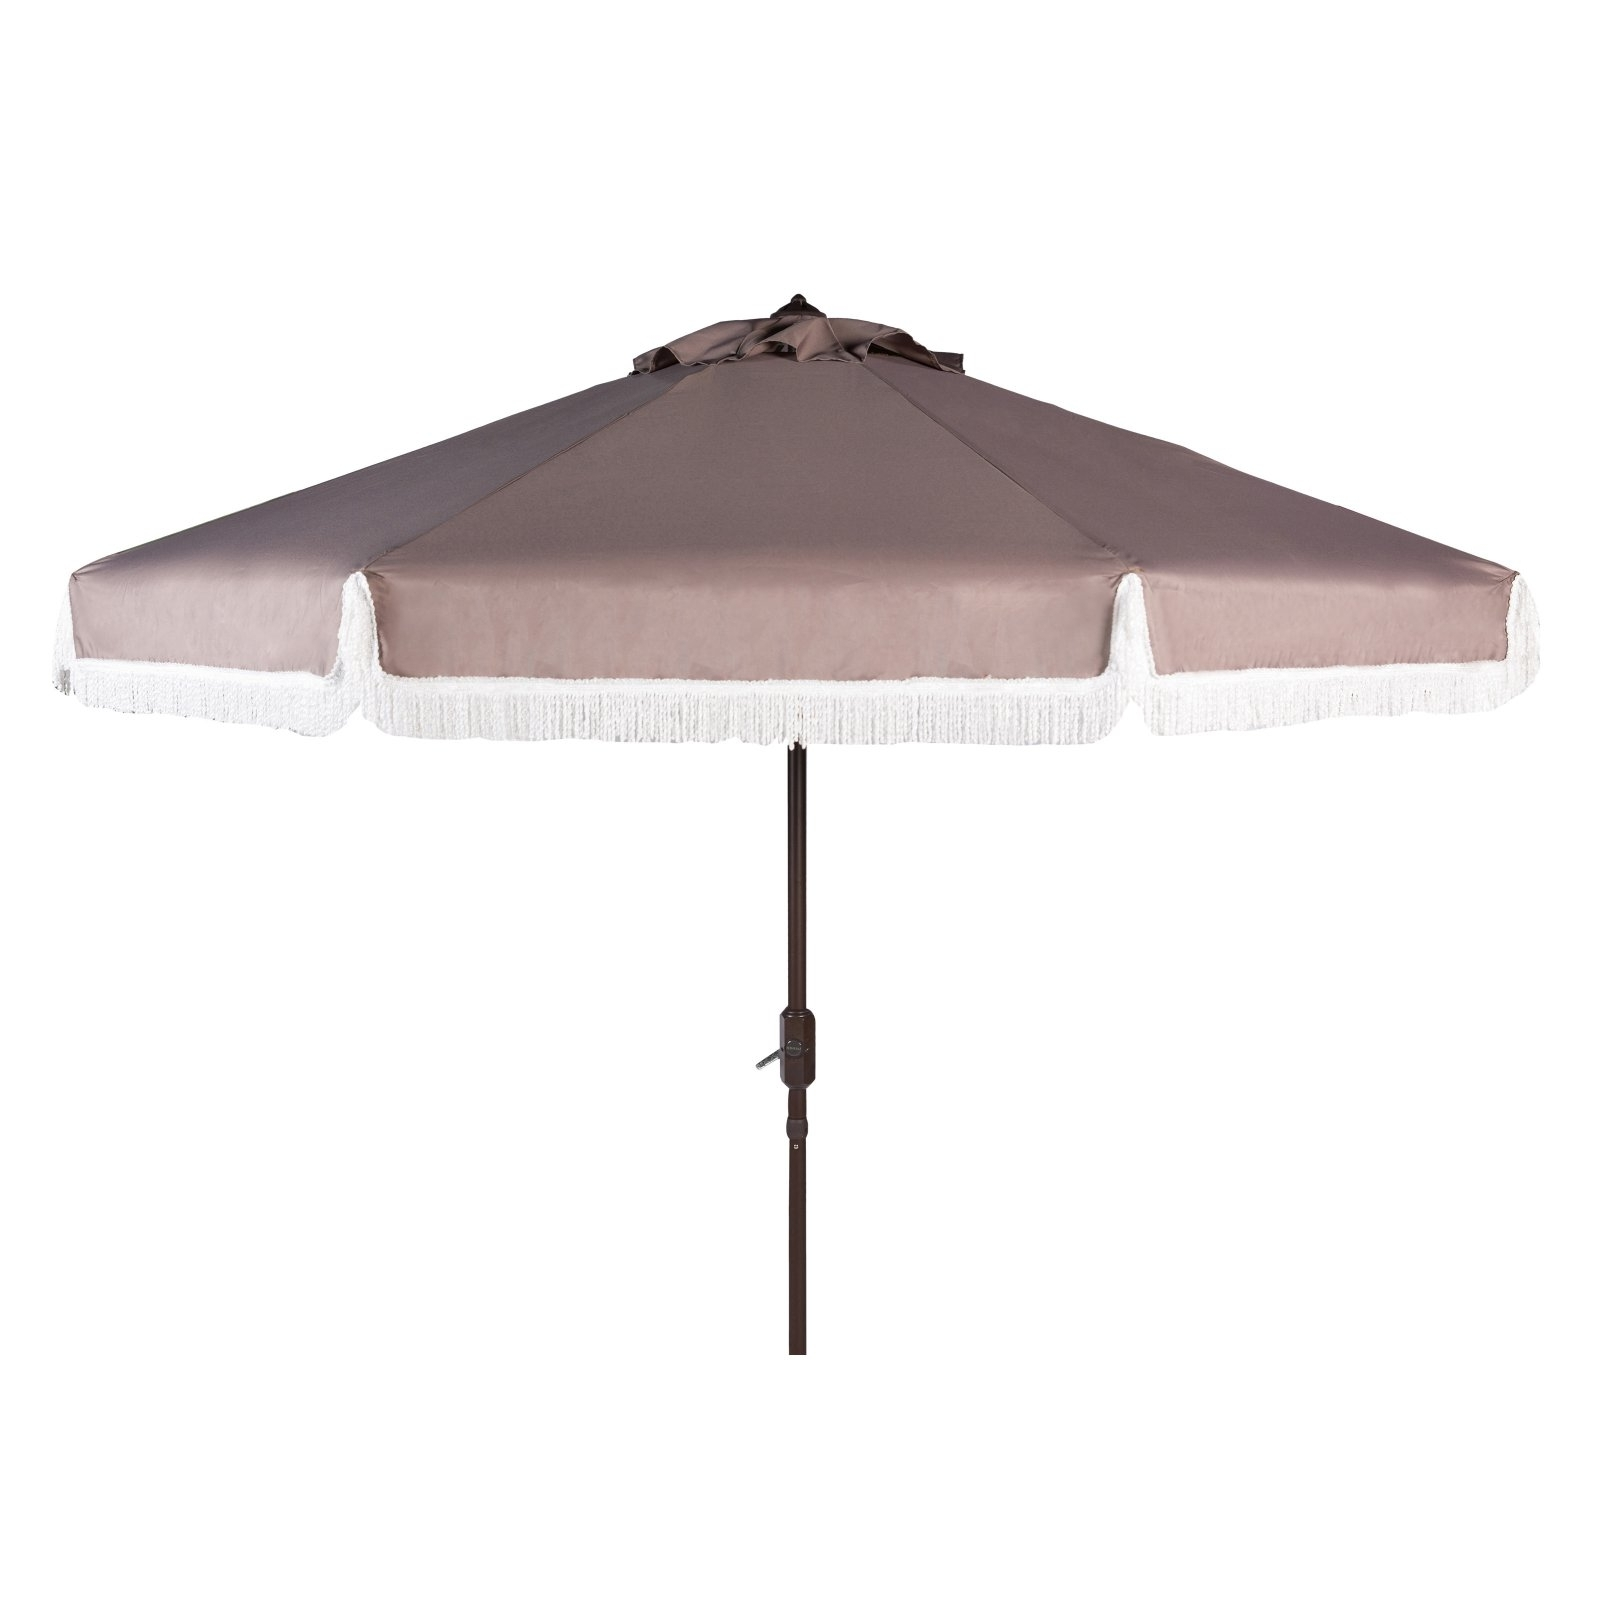 Safavieh Milan Fringe 9' Crank Outdoor Umbrella, Multiple Colors In Most Recently Released Vinyl Patio Umbrellas With Fringe (View 12 of 20)